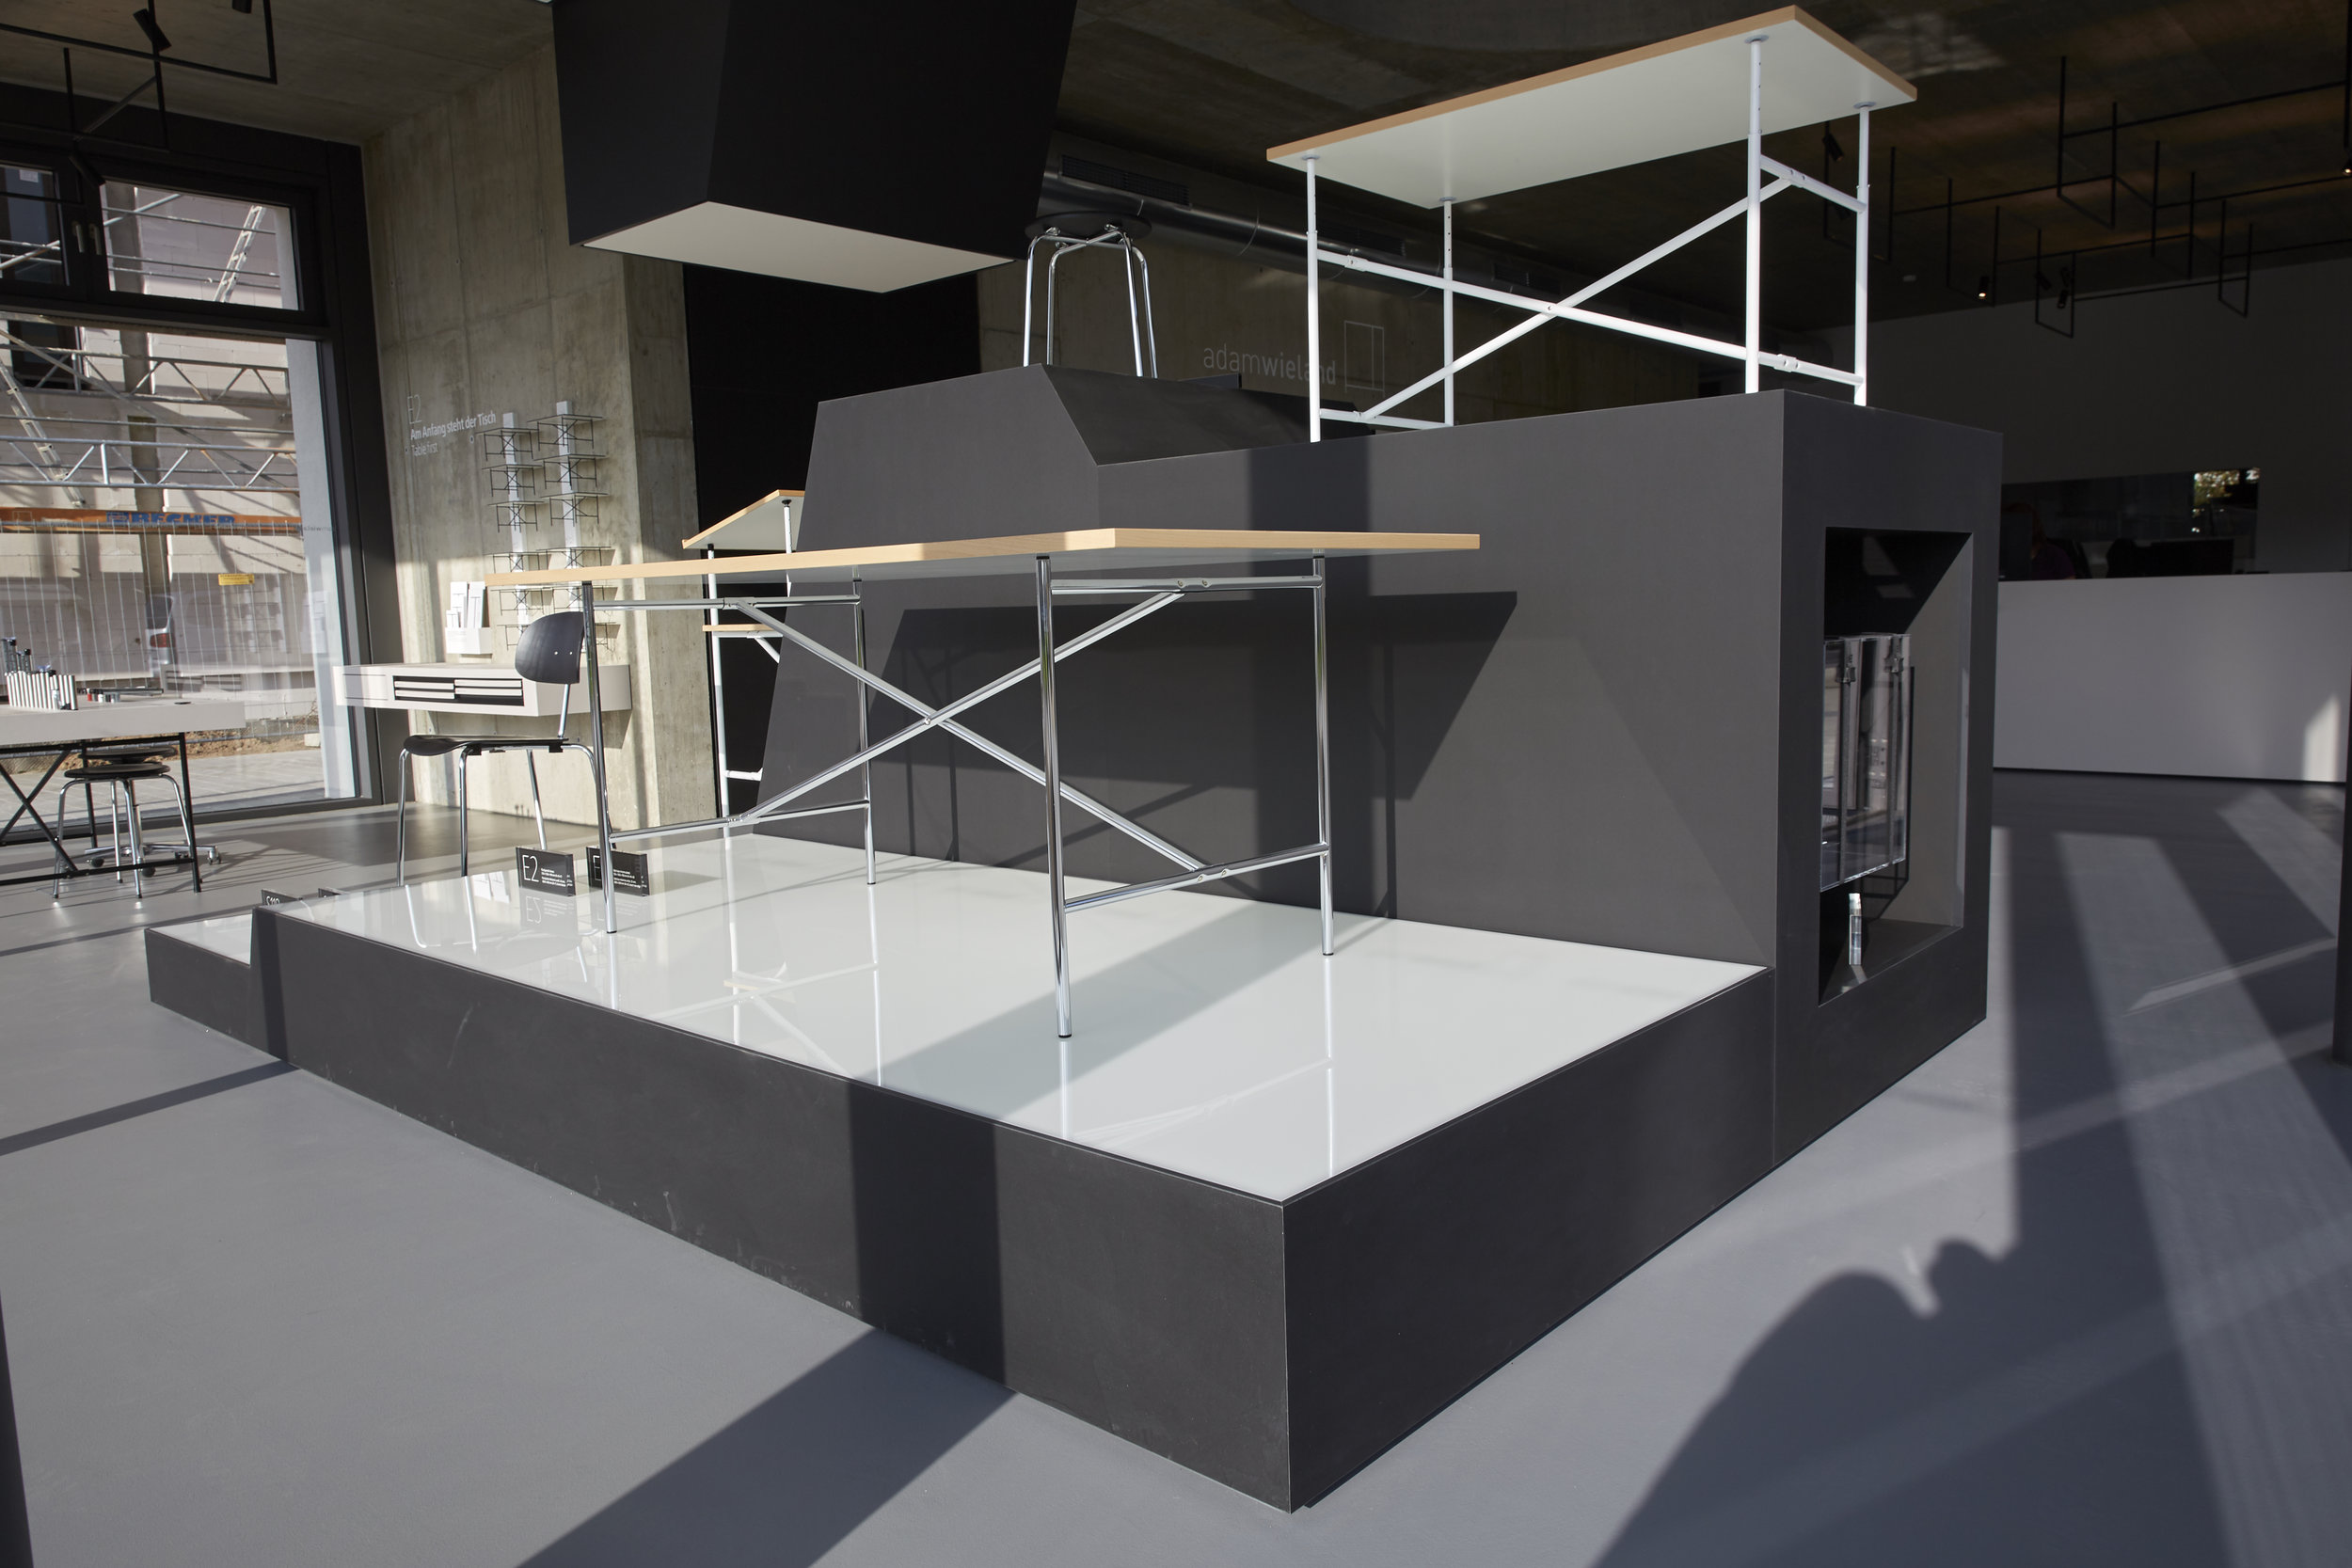 The E2 Table on Exhibit